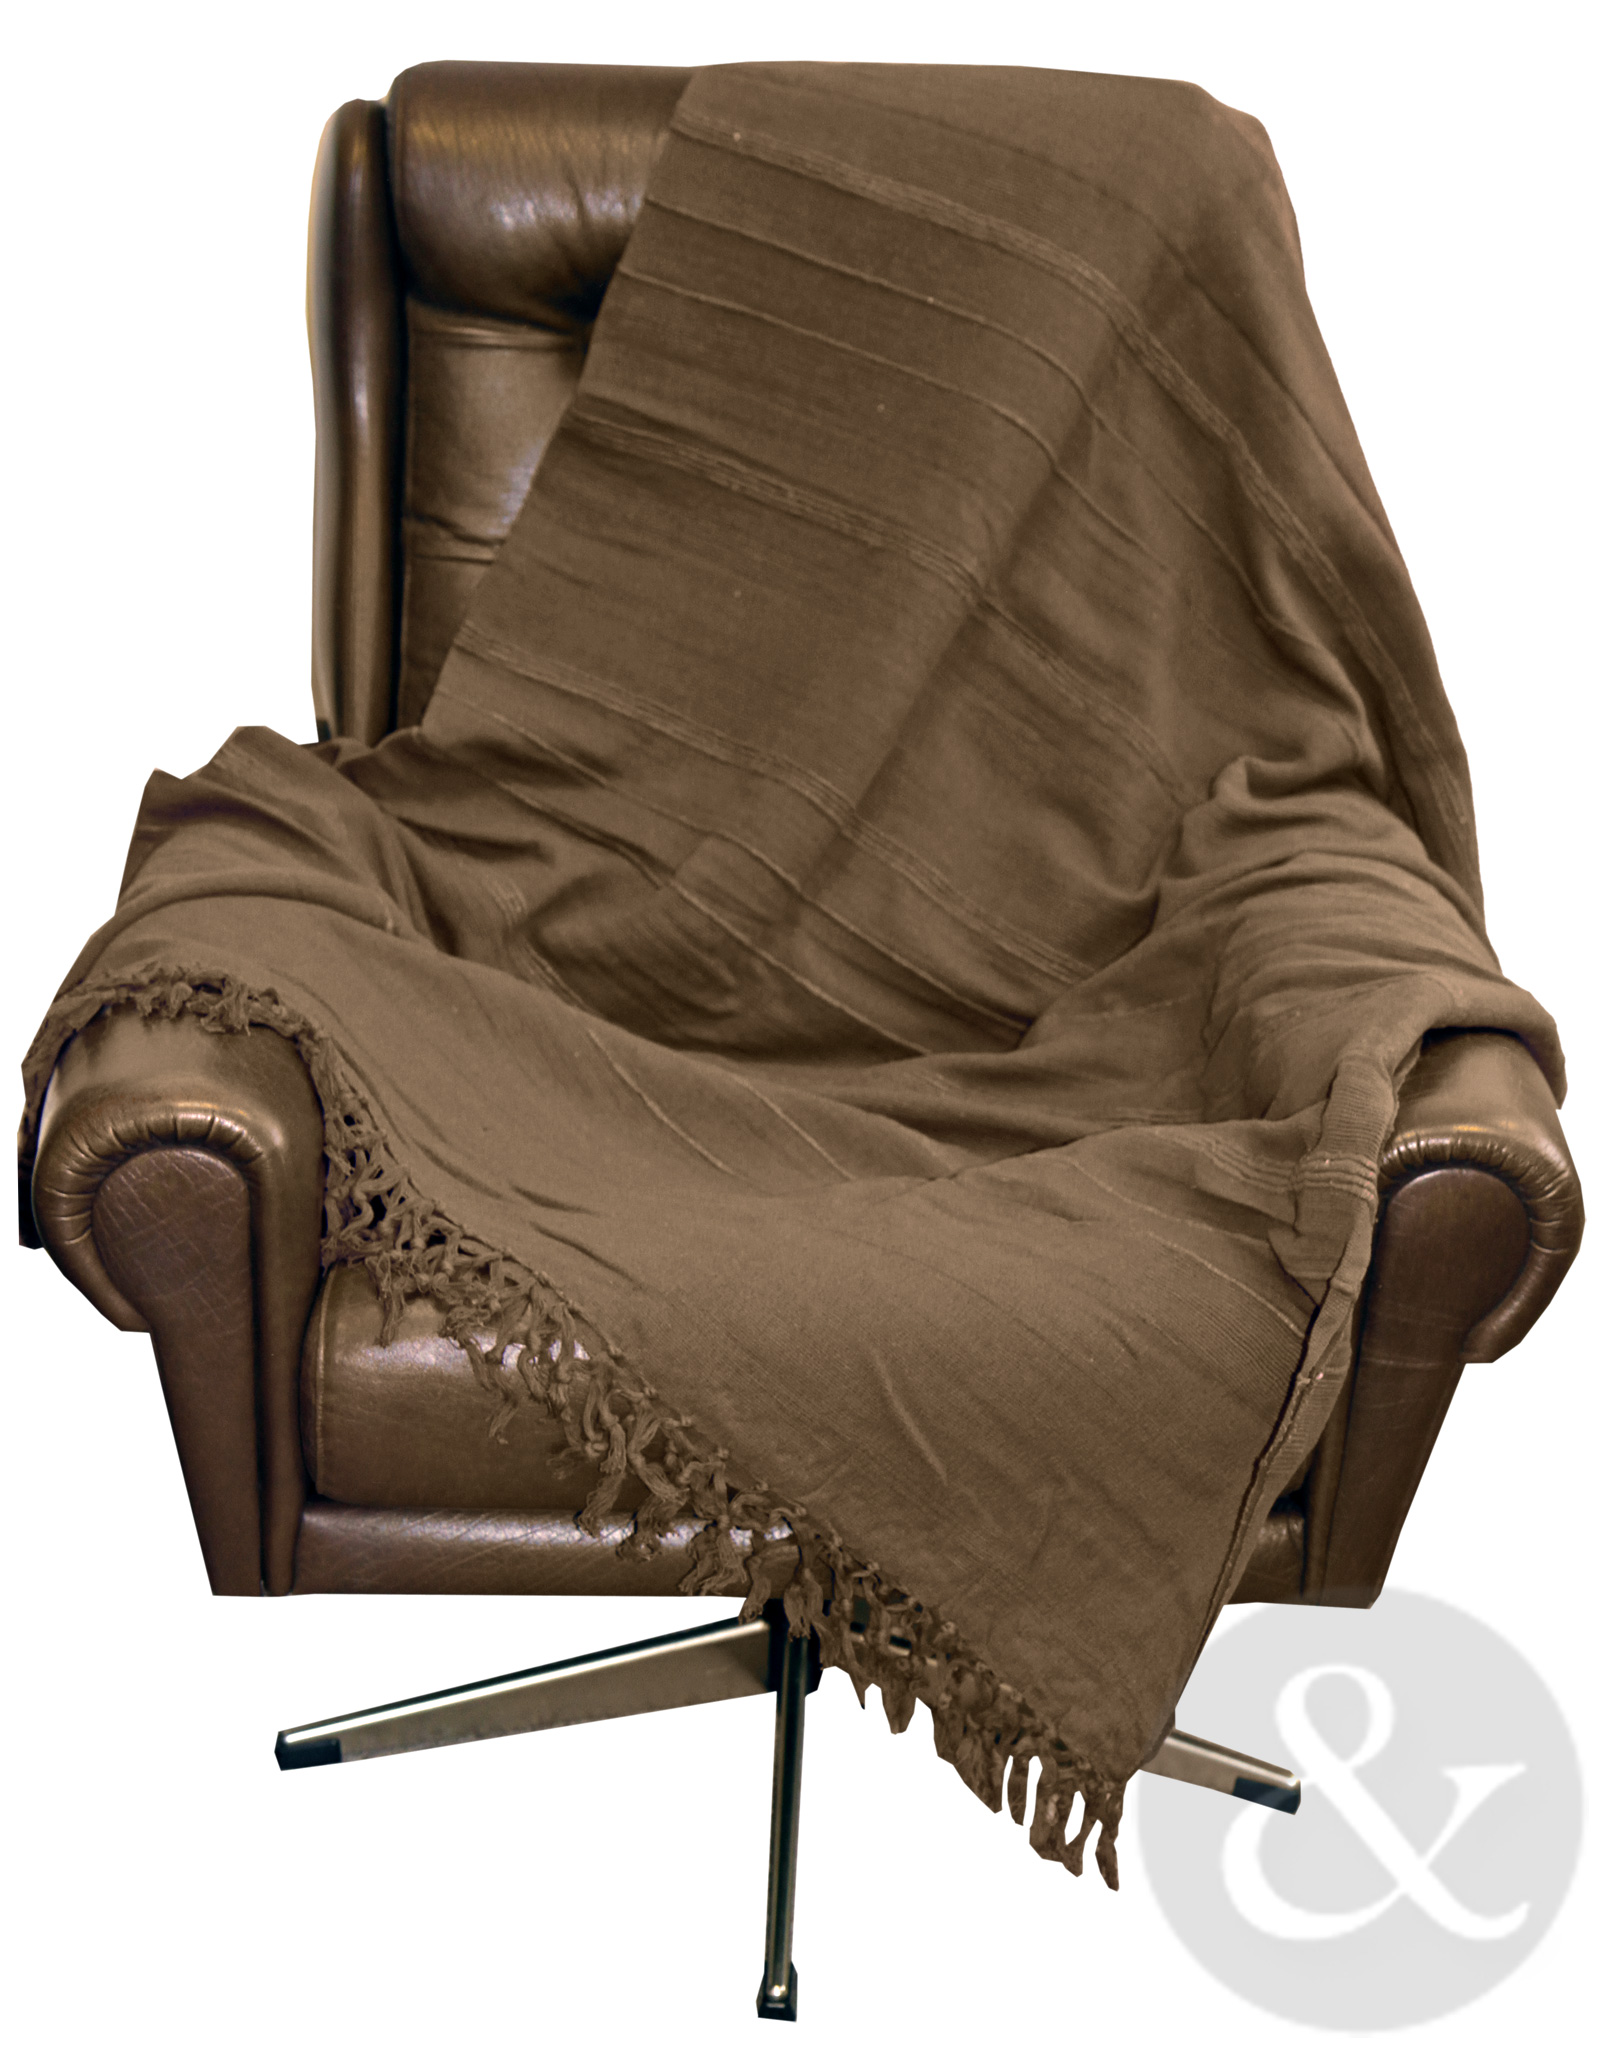 100% Cotton Throws Extra Large Luxury Thermal Throw Over